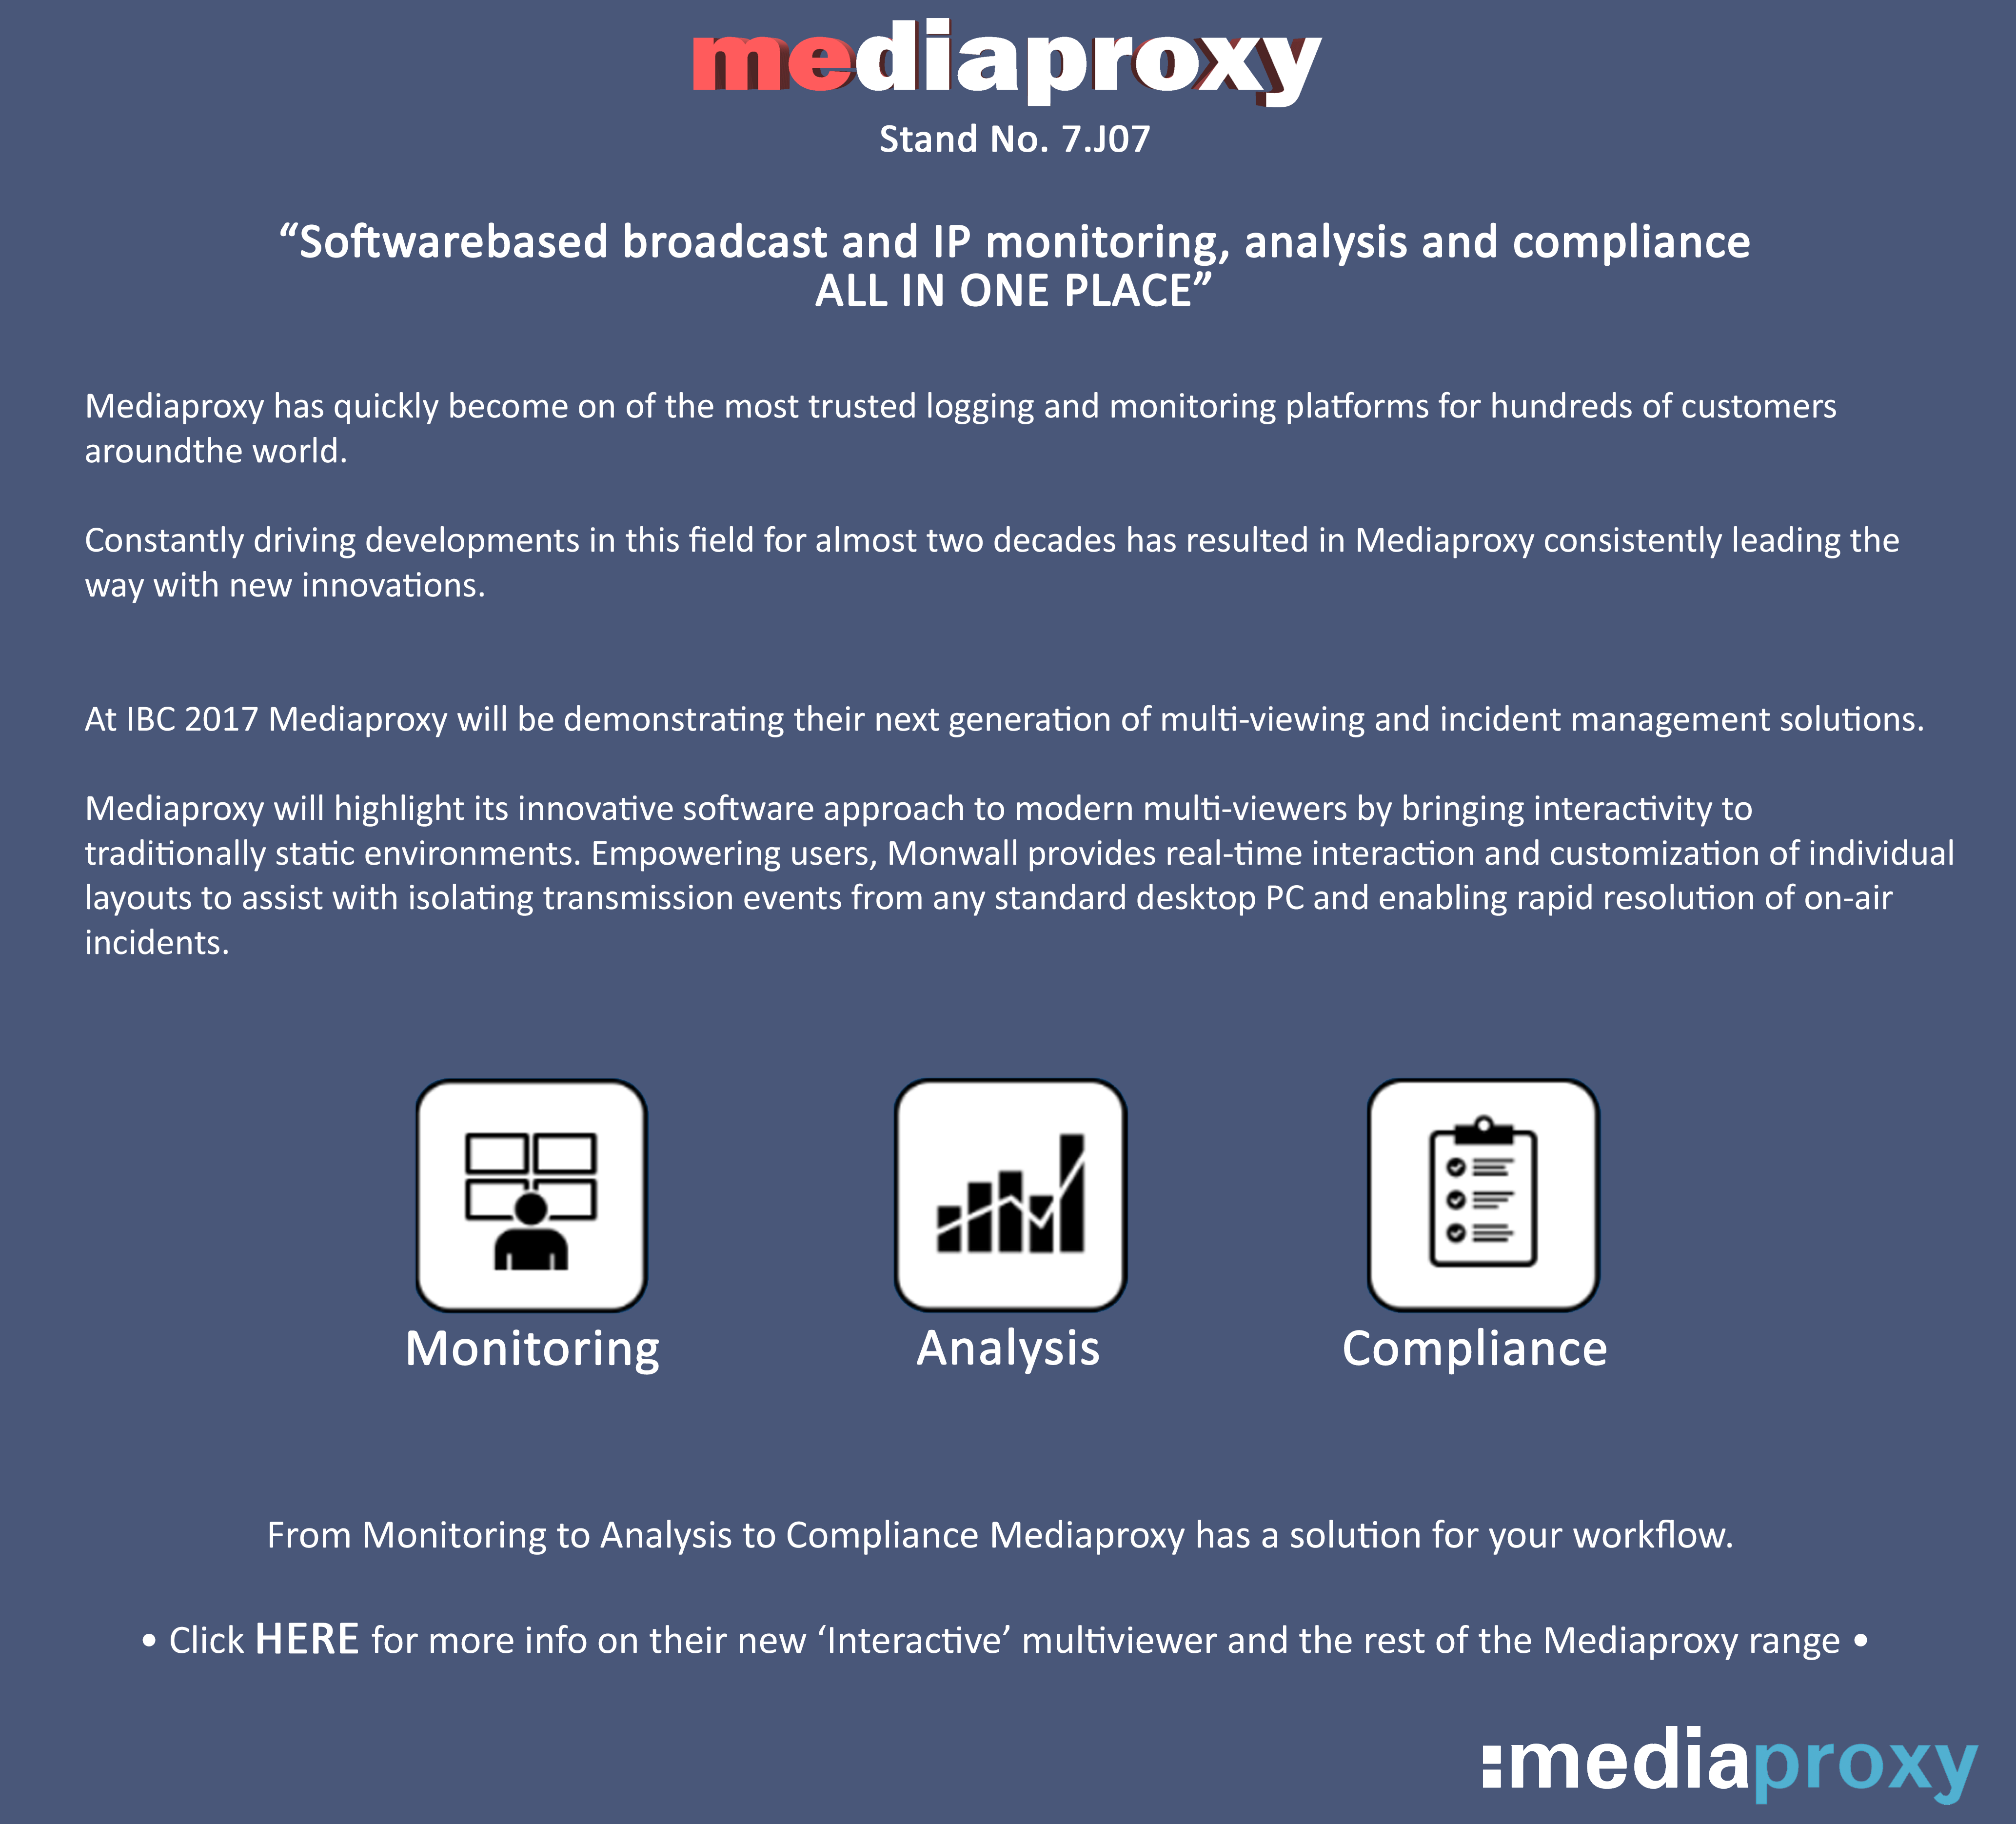 What To See At IBC 2017_Mediaproxy_IP Monitoring, Analysis and Compliance